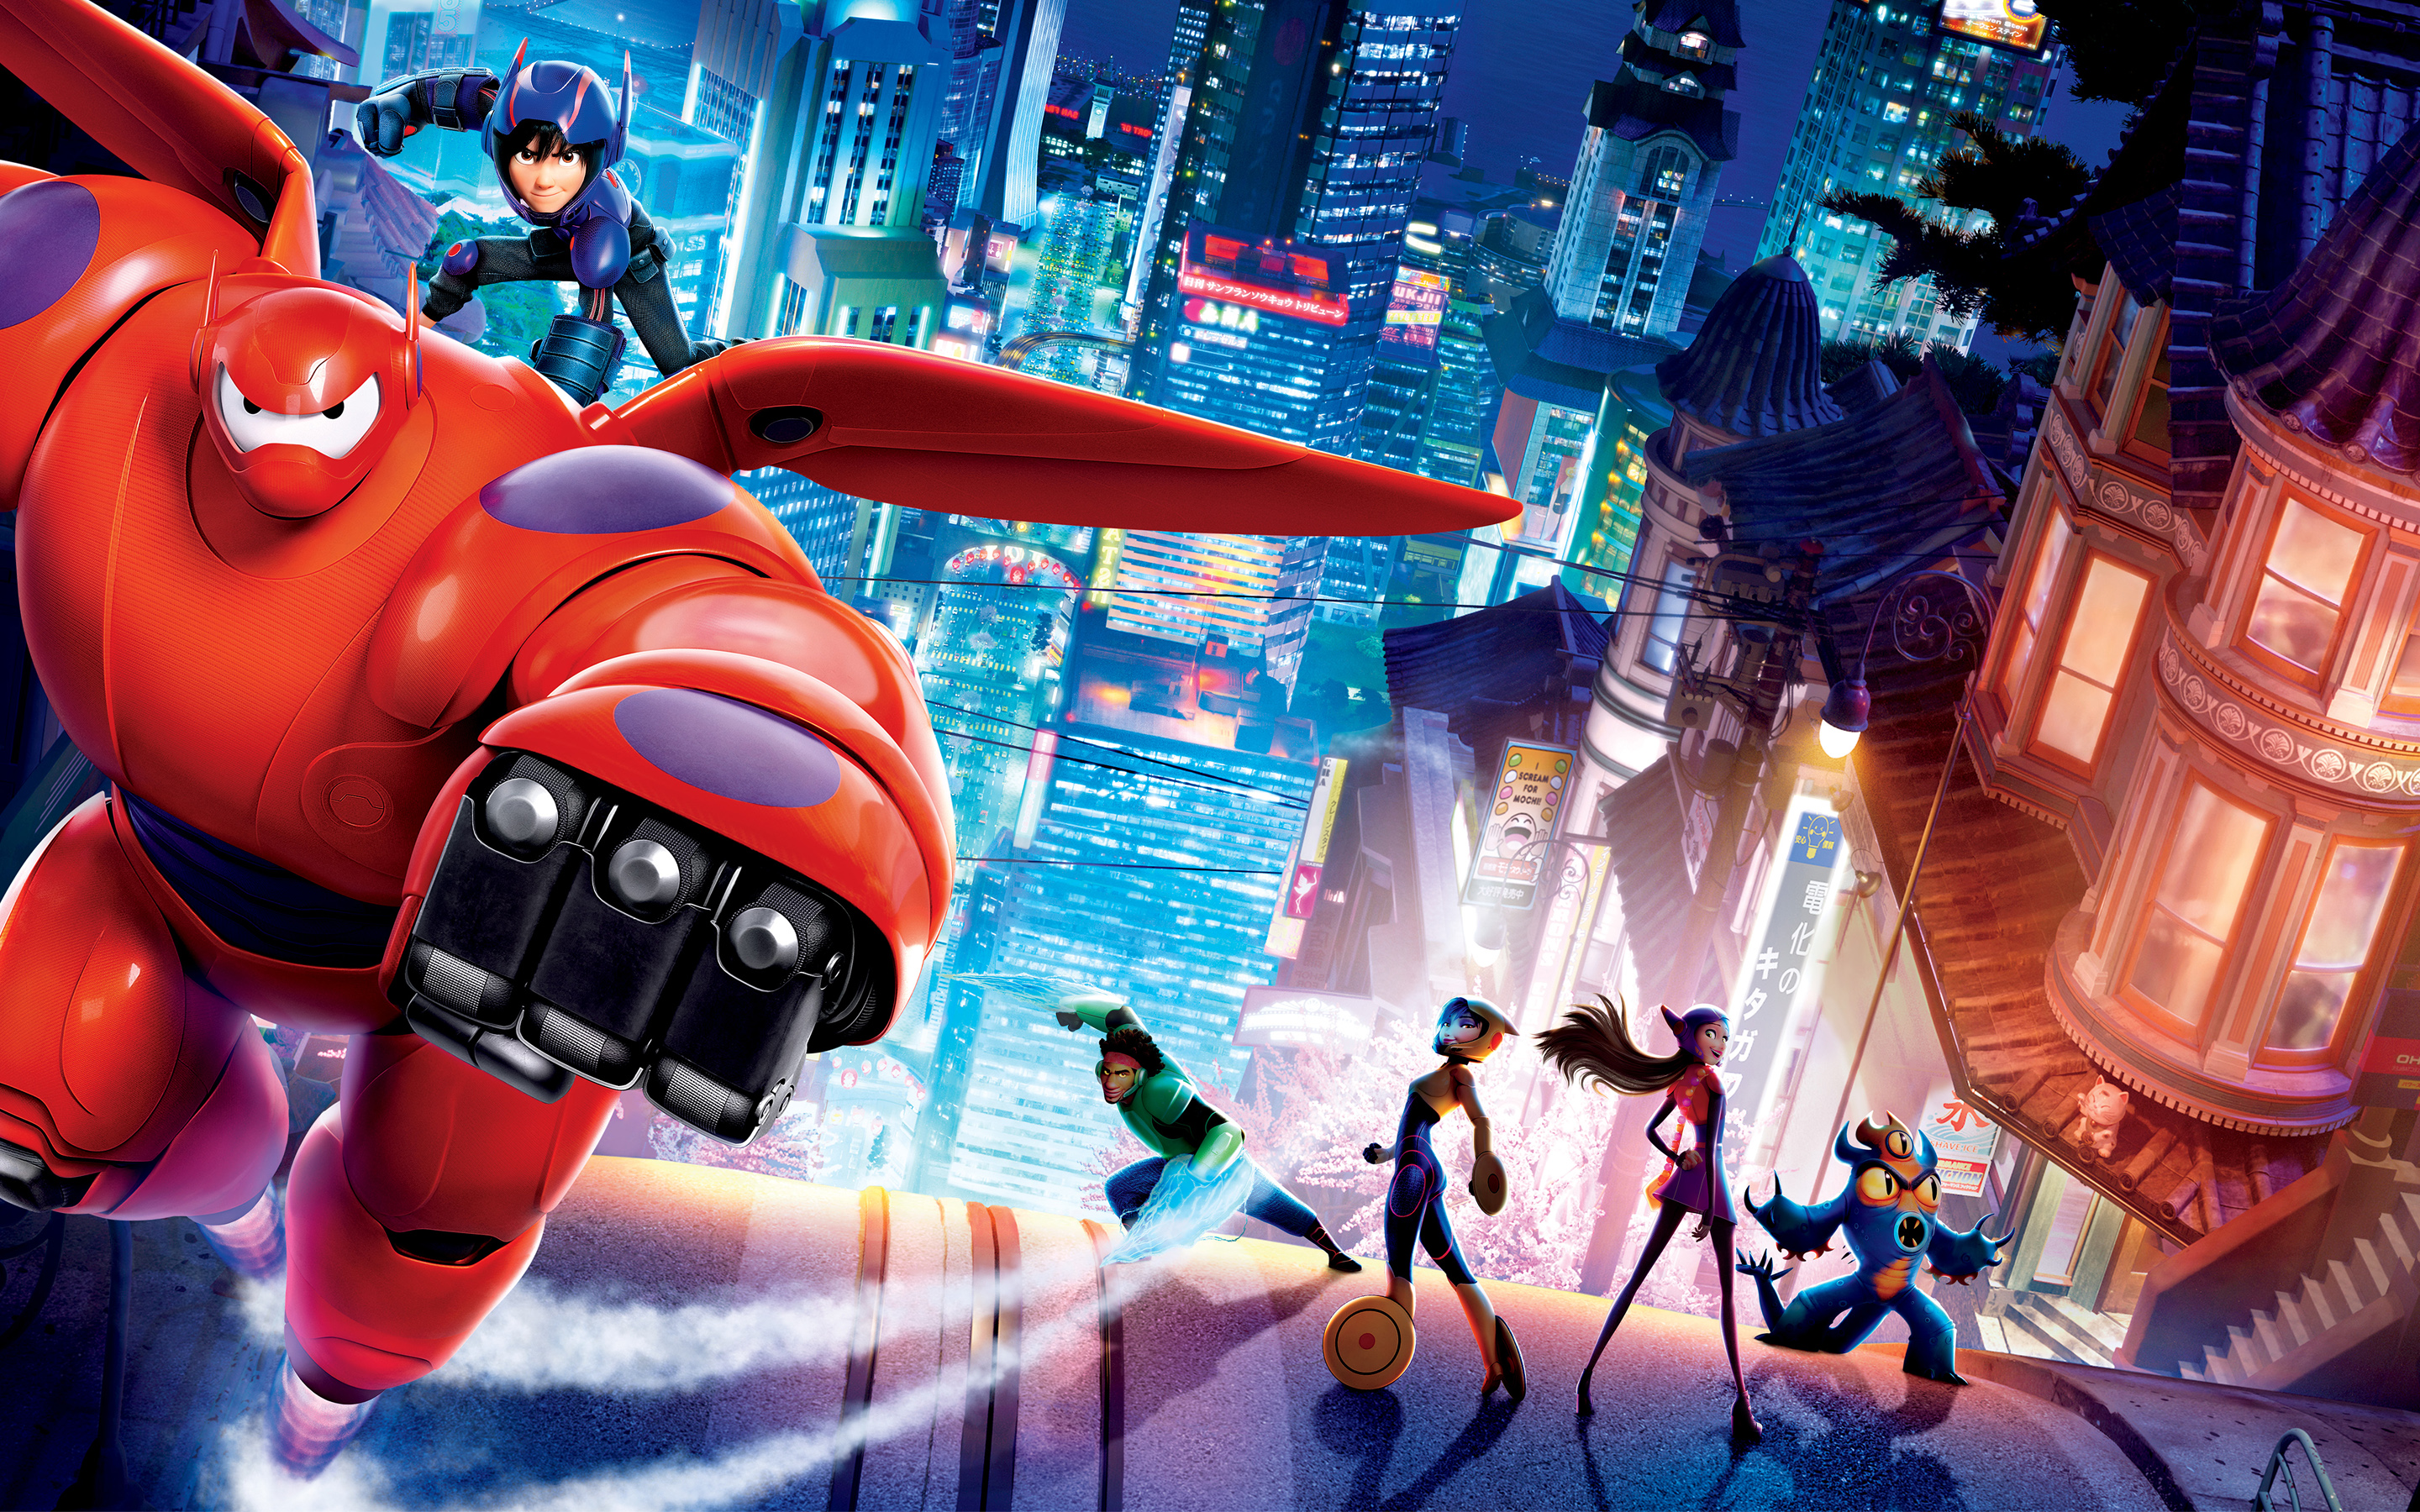 HD Wallpapers 2014 Big Hero 6